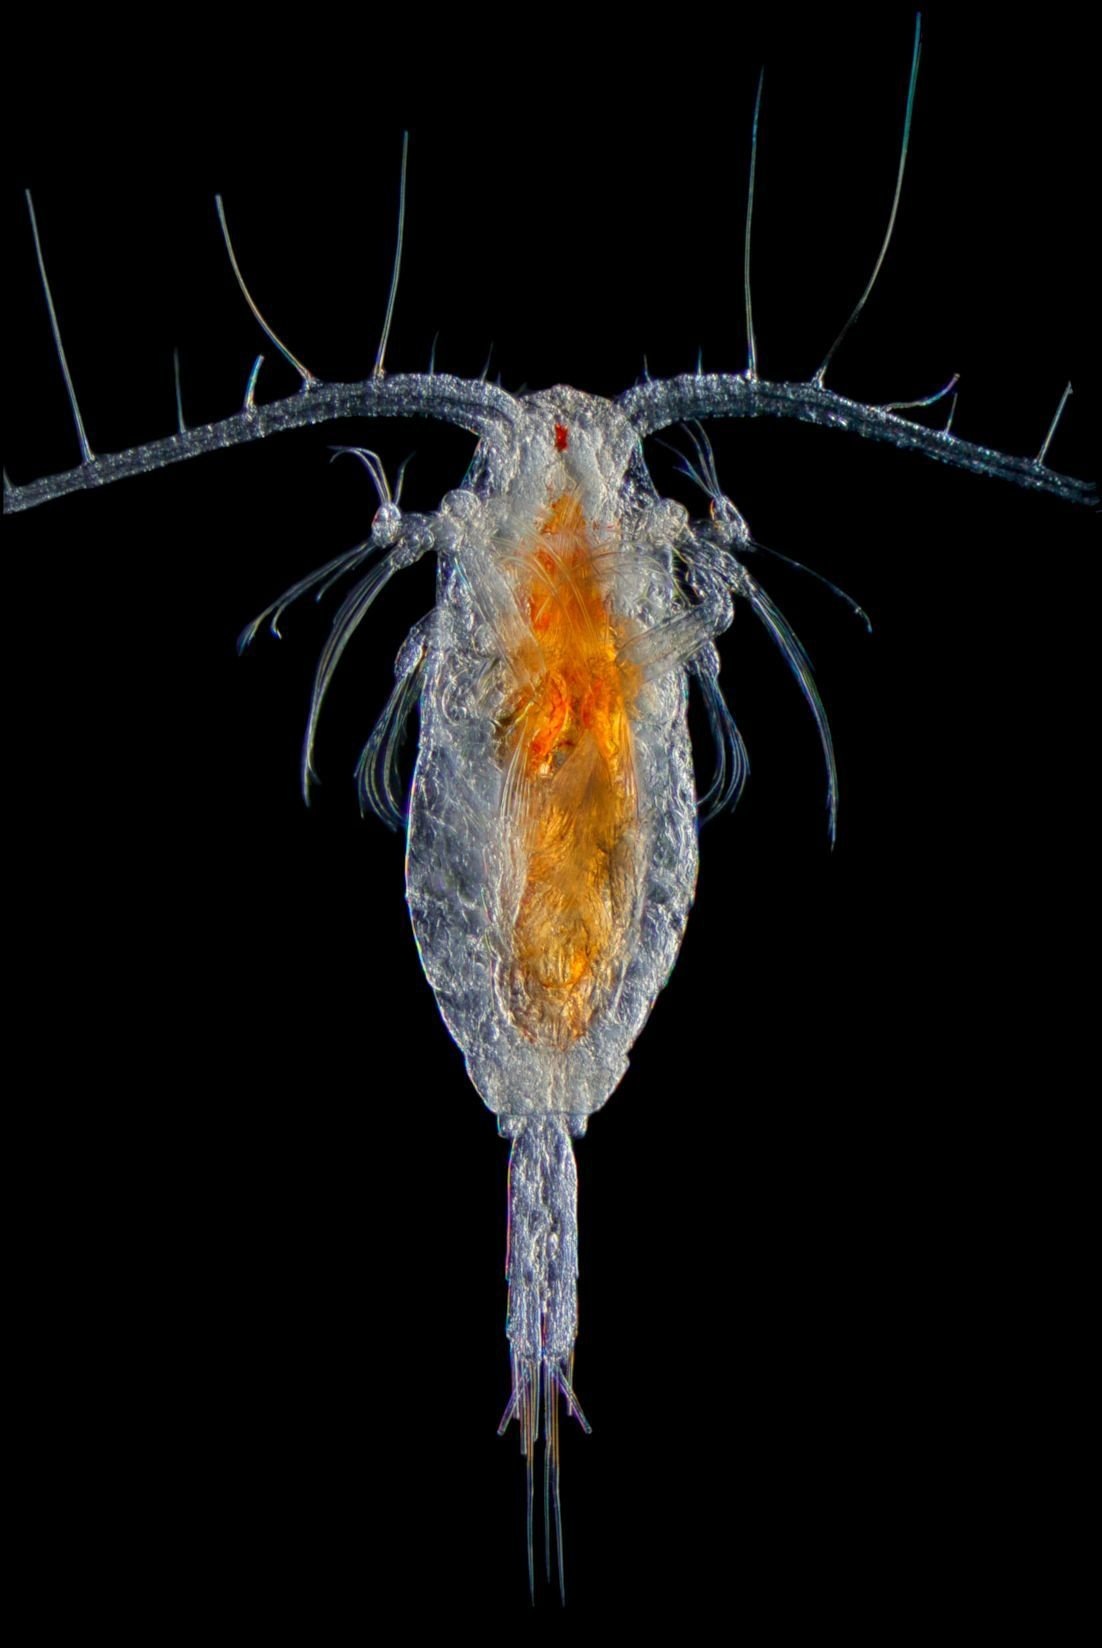 PC Caitlin McKinstry of Prince William Sound Science Center plankton type Mesocalanus_v2.2.tiff